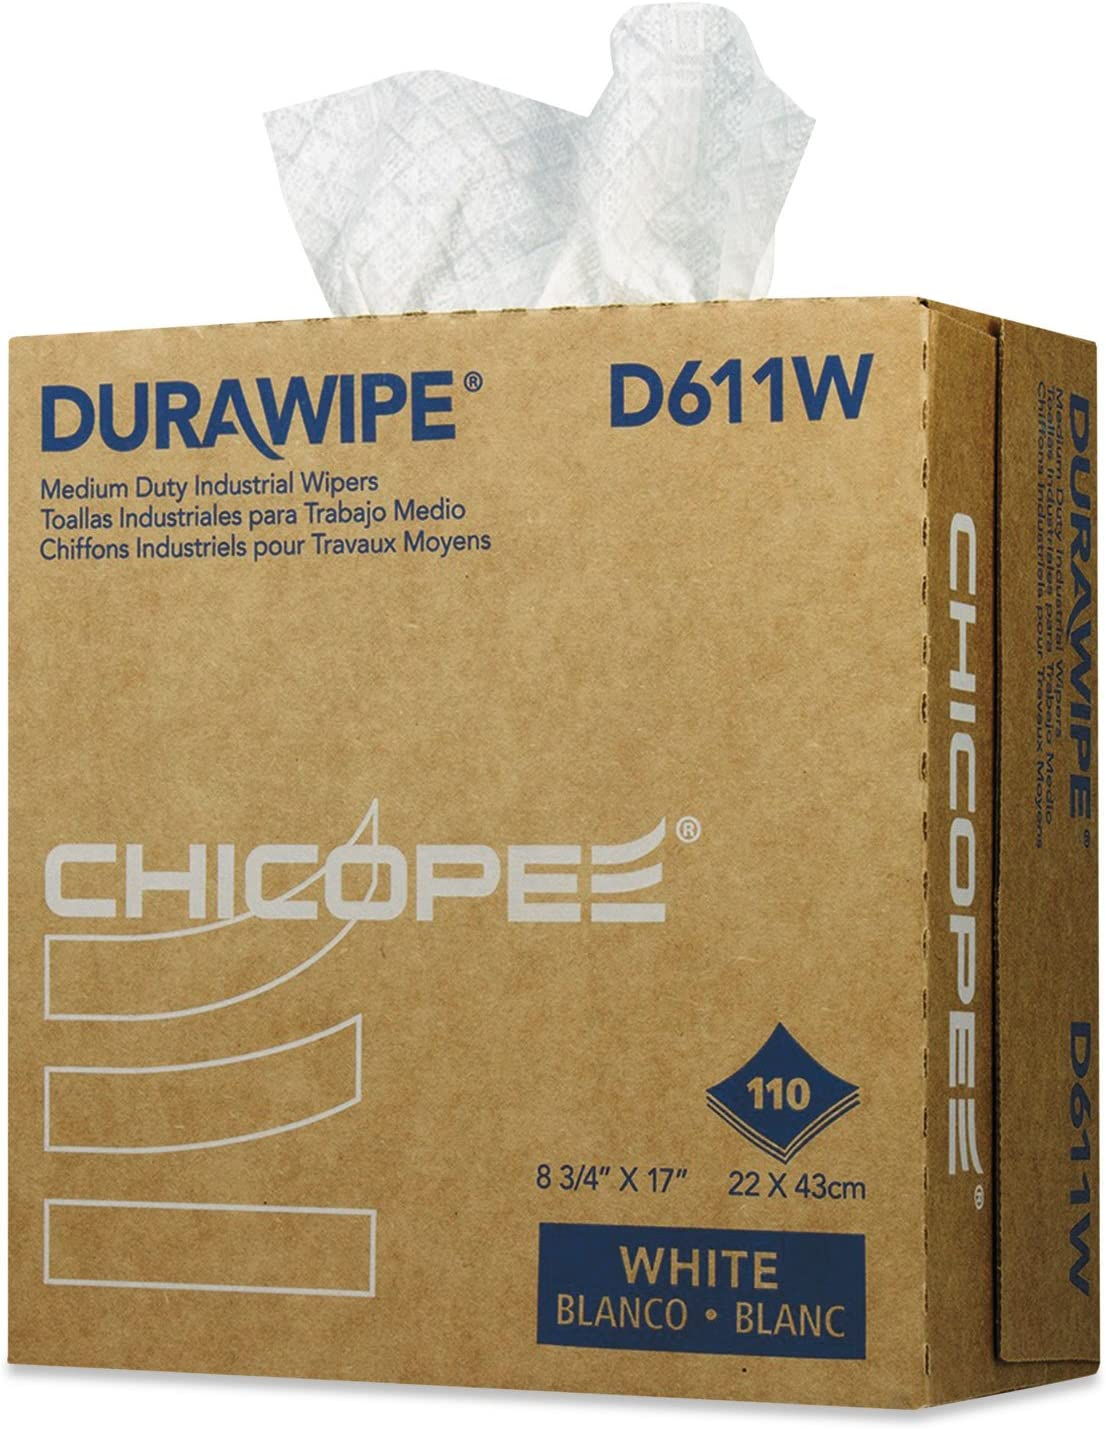 Chicopee Durawipe Max 66% At the price of surprise OFF Medium-Duty Industrial Wipers Whit 8. 17 x